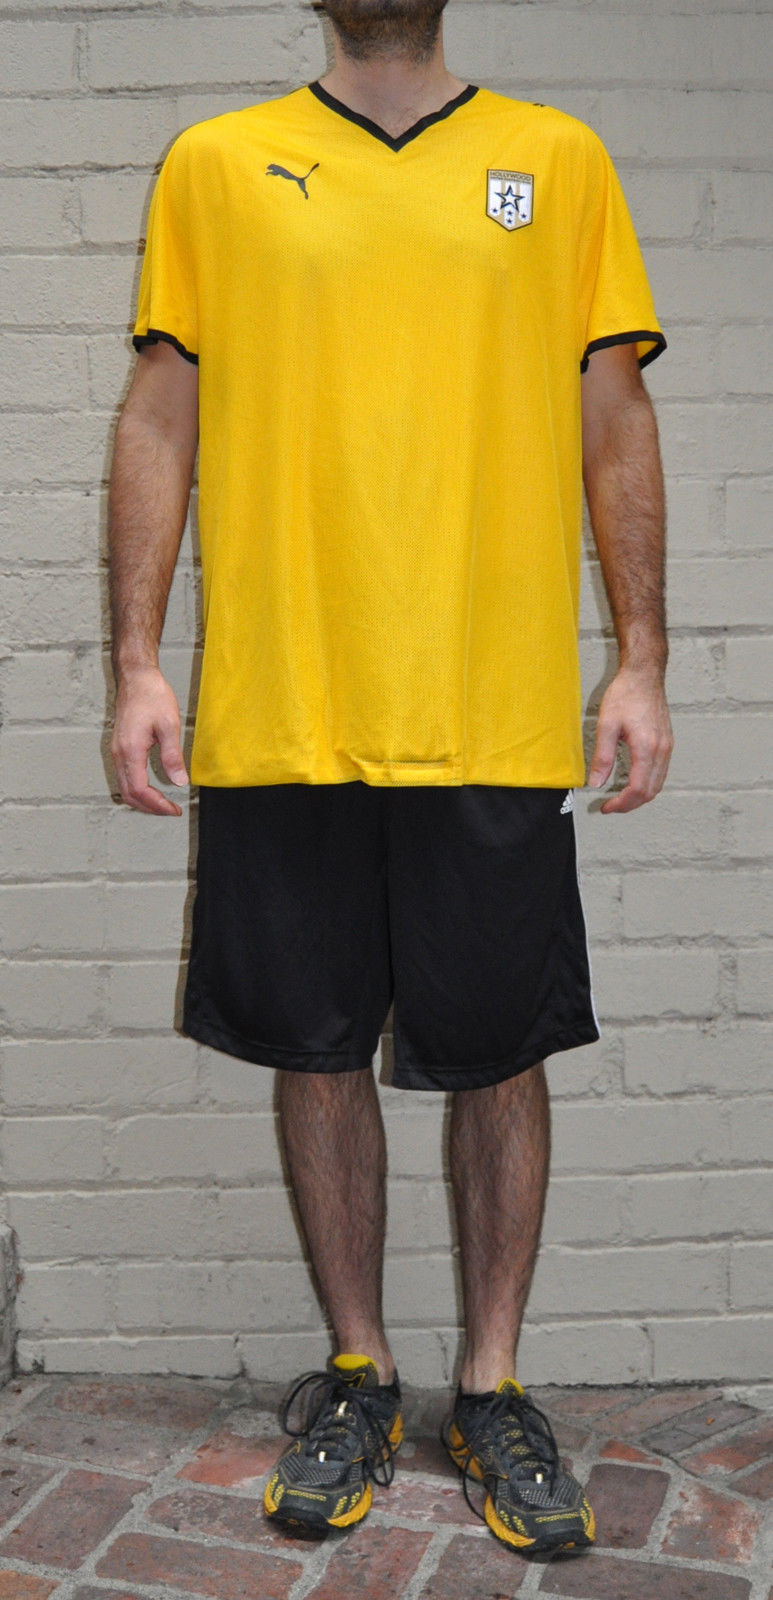 Primary image for Puma 1.08 Hollywood United Yellow Black Soccer Football Jersey 2XL Mens